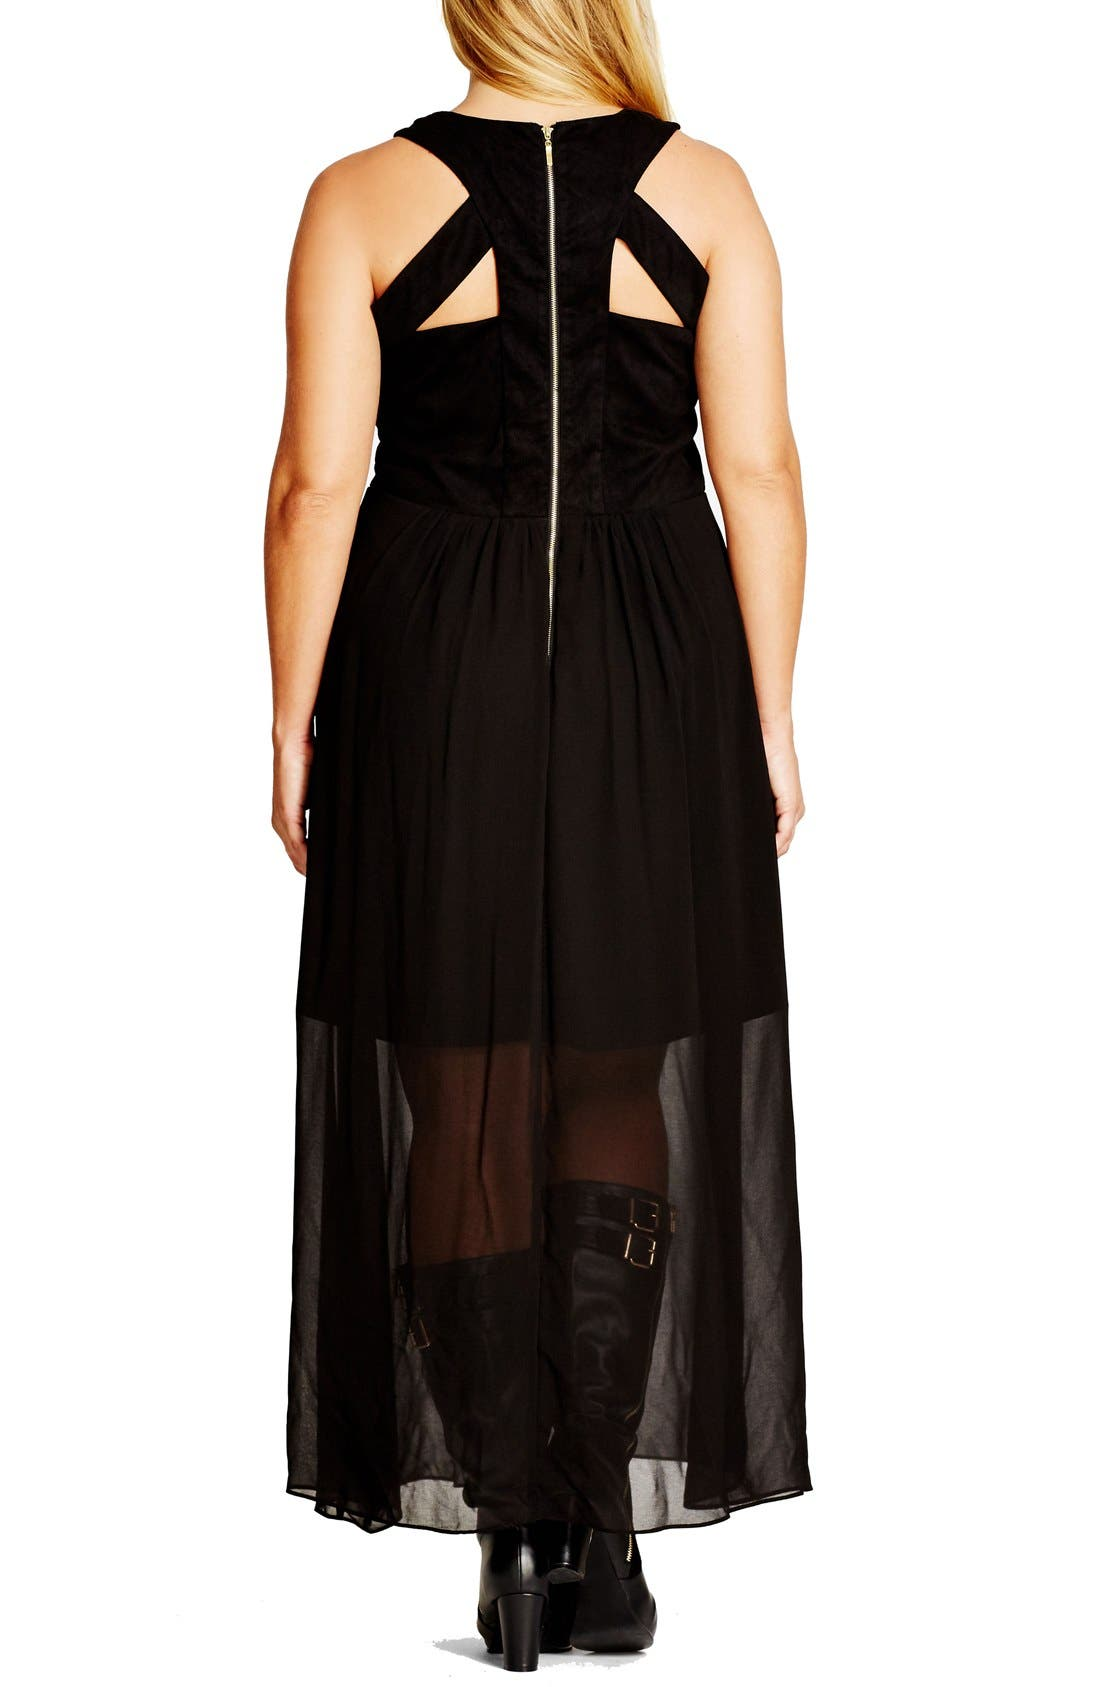 Alternate Image 2  - City Chic 'Rhianna' Lace-Up Trim Faux Suede & Chiffon Maxi Dress (Plus Size)